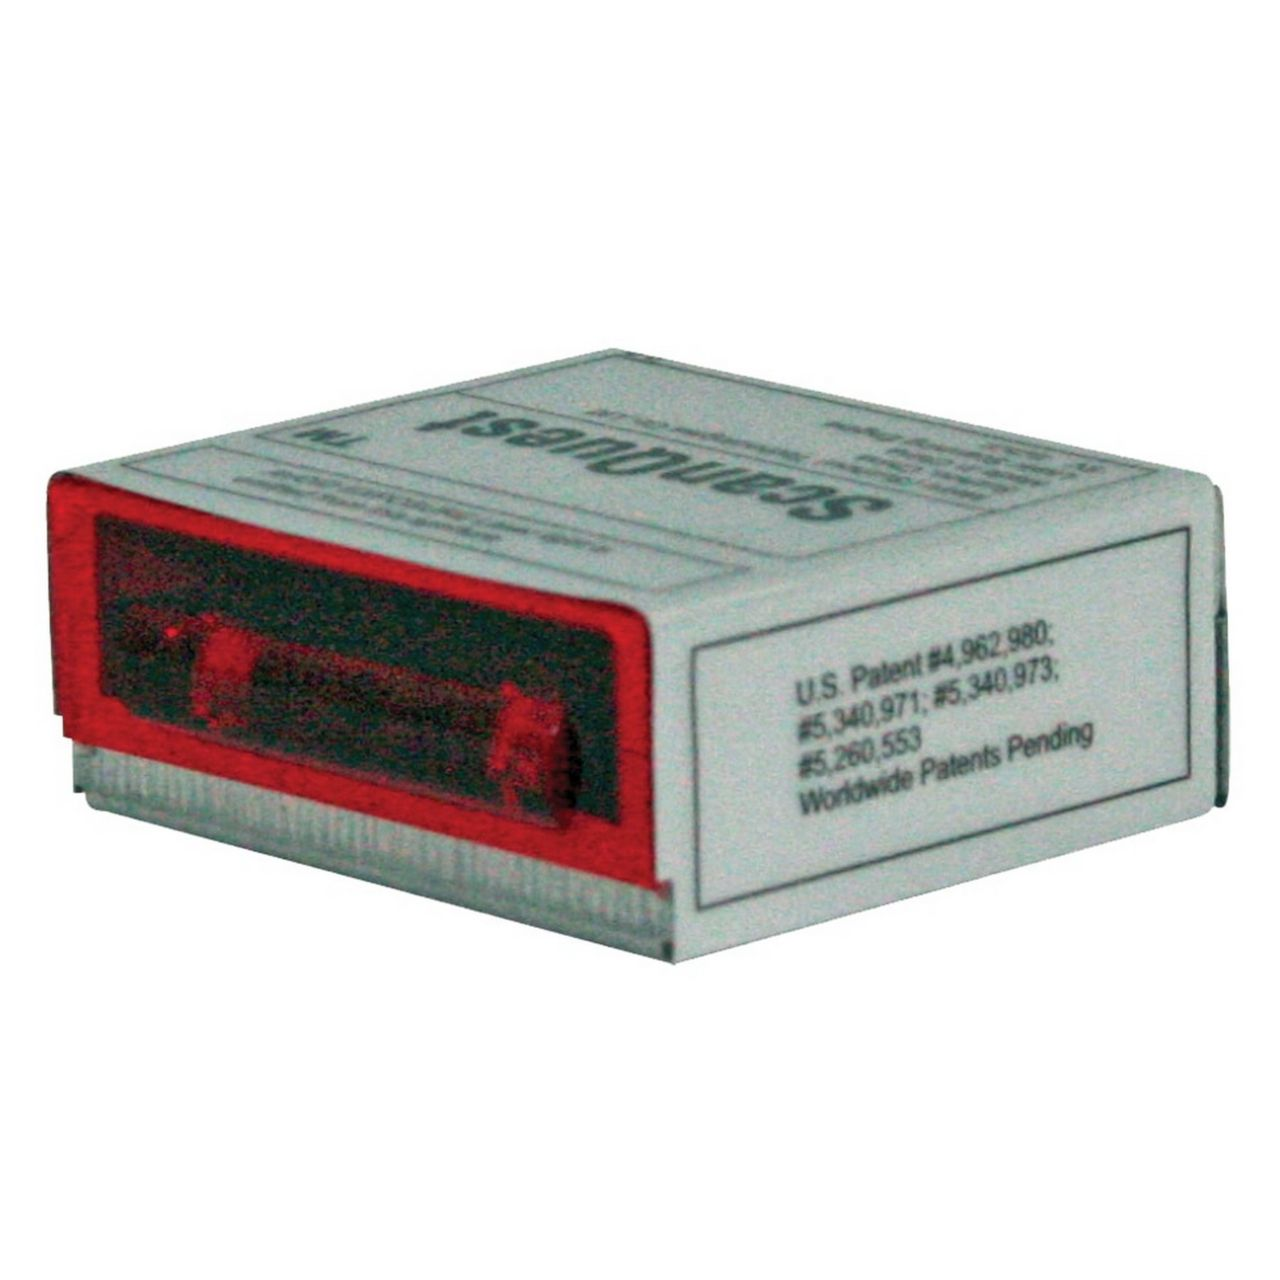 IS4125 Series 1D Imager Modules